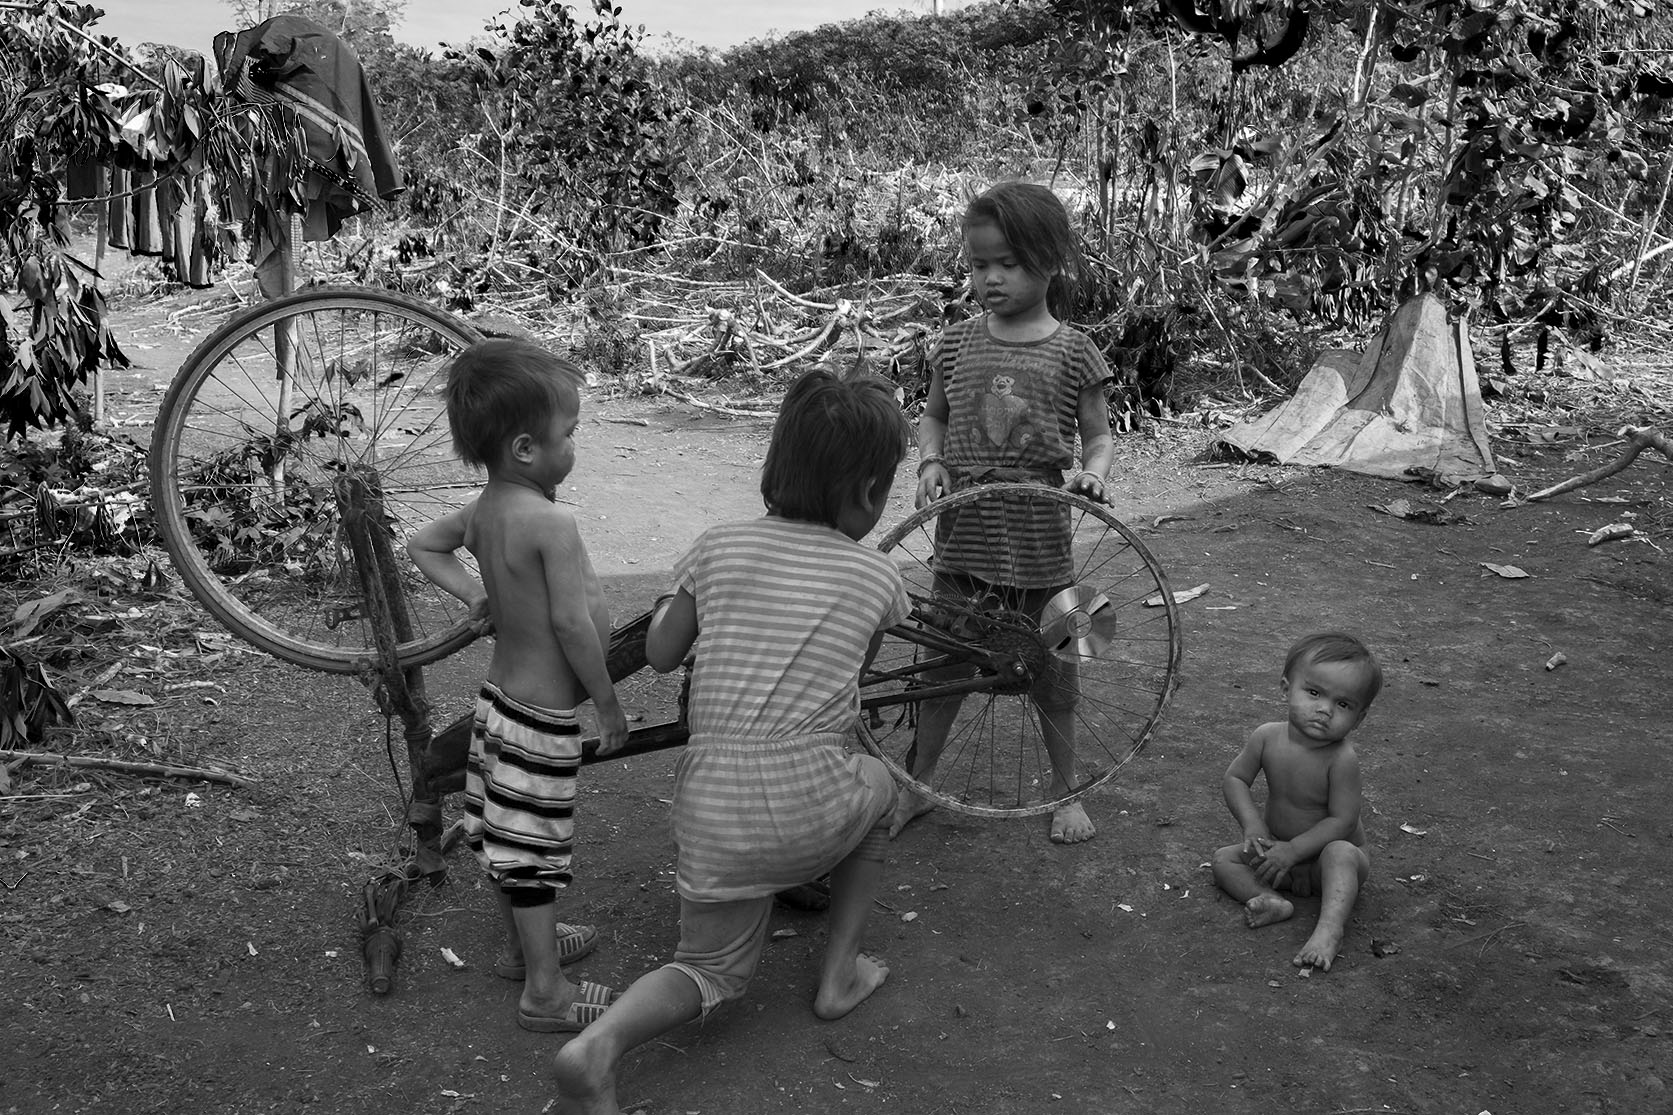 Children in ratanakiri district, Cambodia playing with an old broken bike.